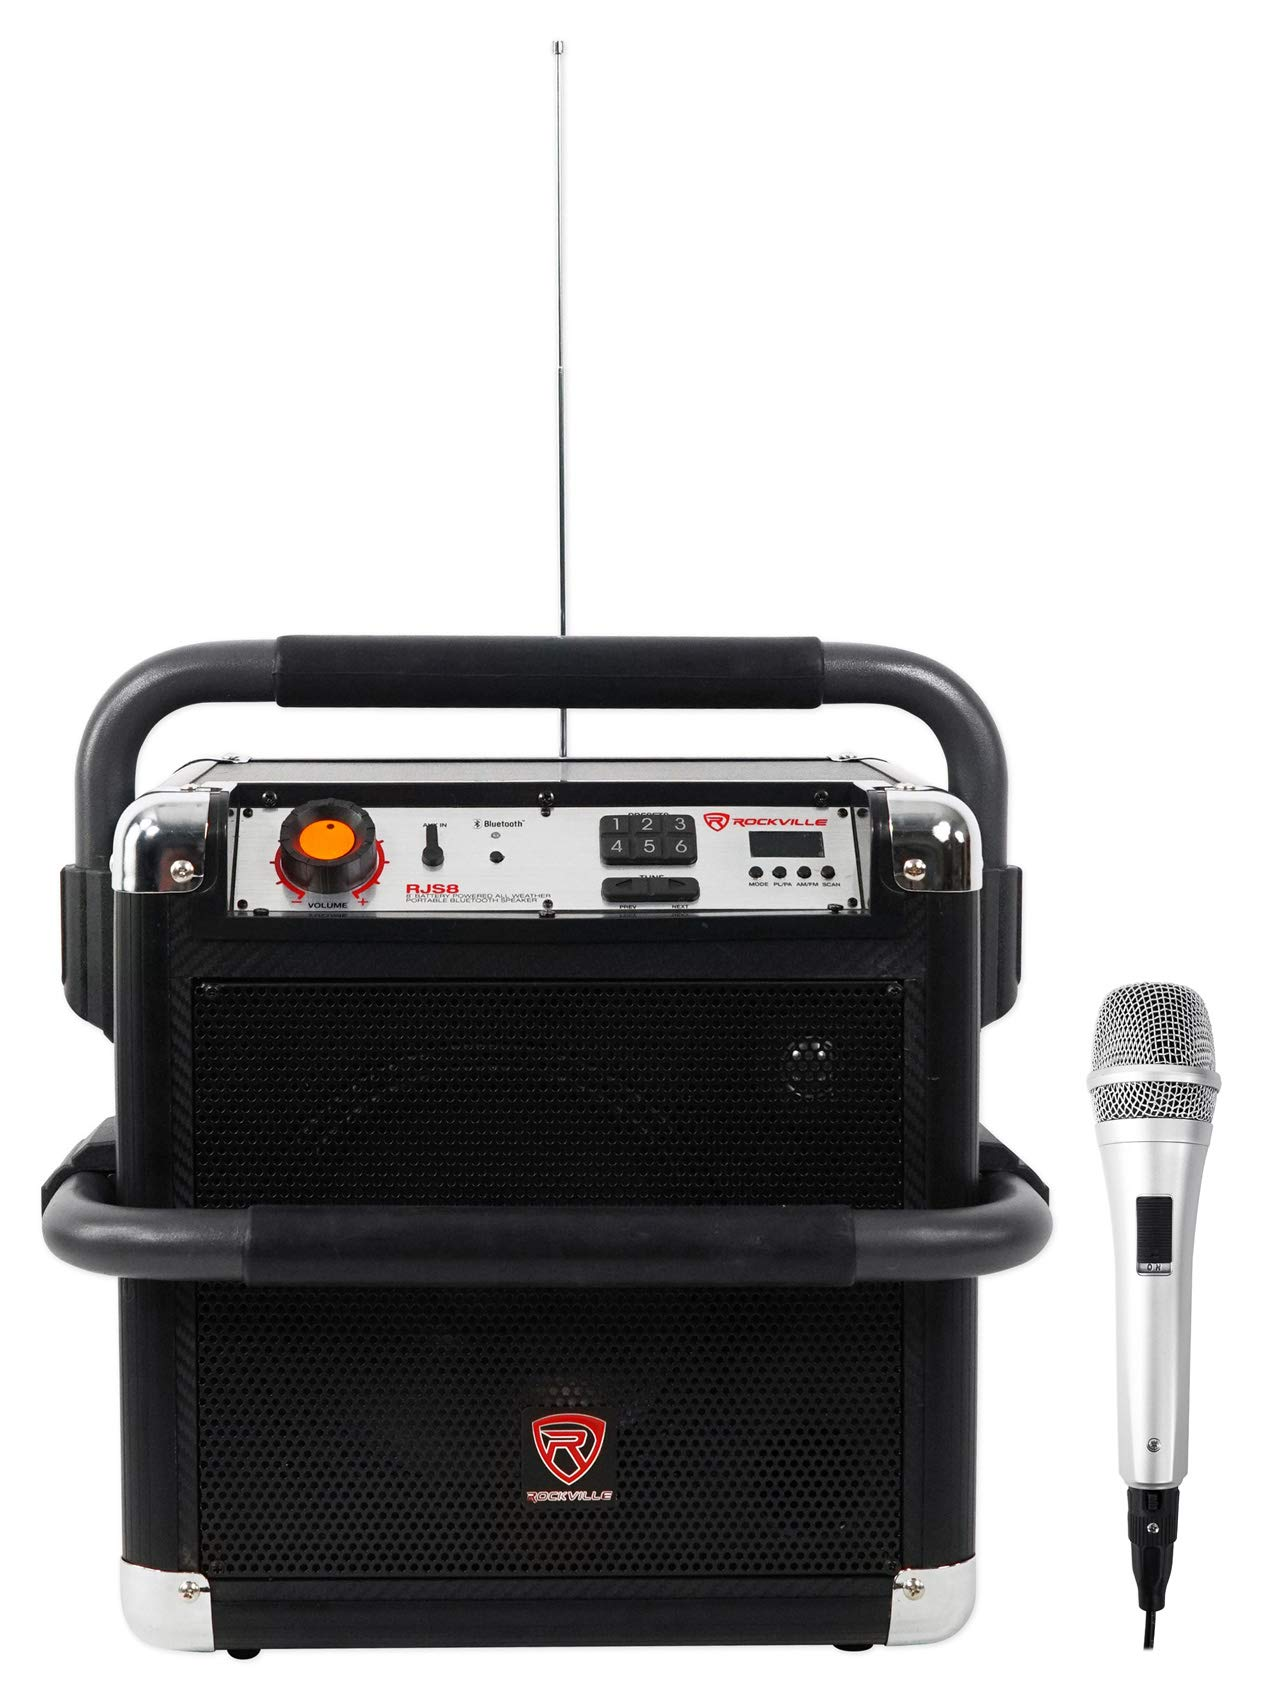 Rockville Rjs8 8'' Jobsite/Portable Rechargeable Powered Bluetooth Pro Speaker/Mic by Rockville